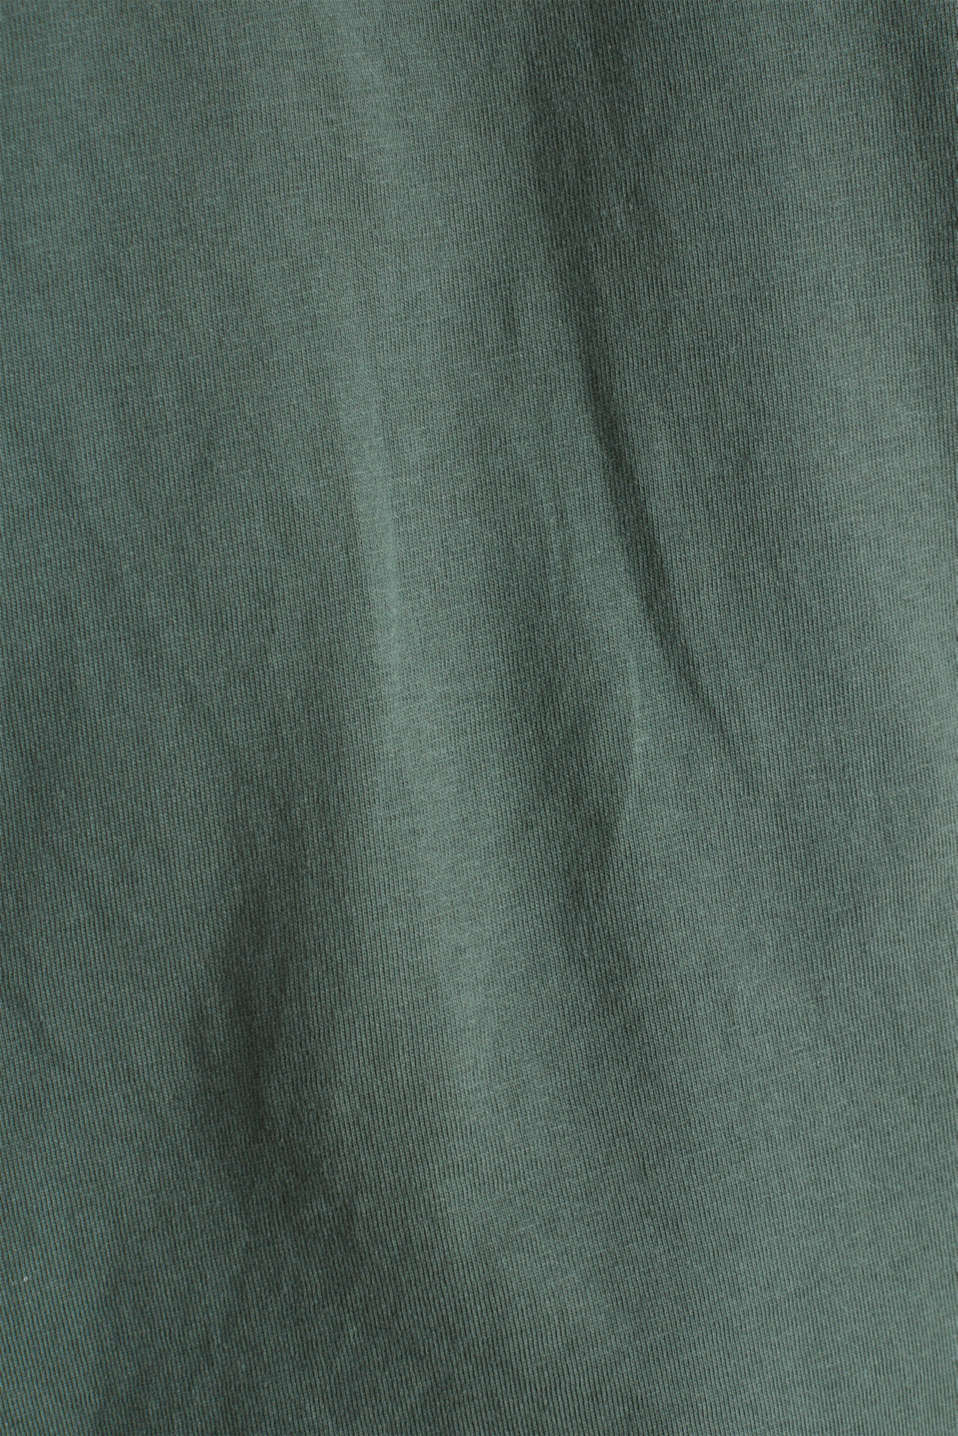 Loose T-shirt in 100% cotton, KHAKI GREEN 4, detail image number 3